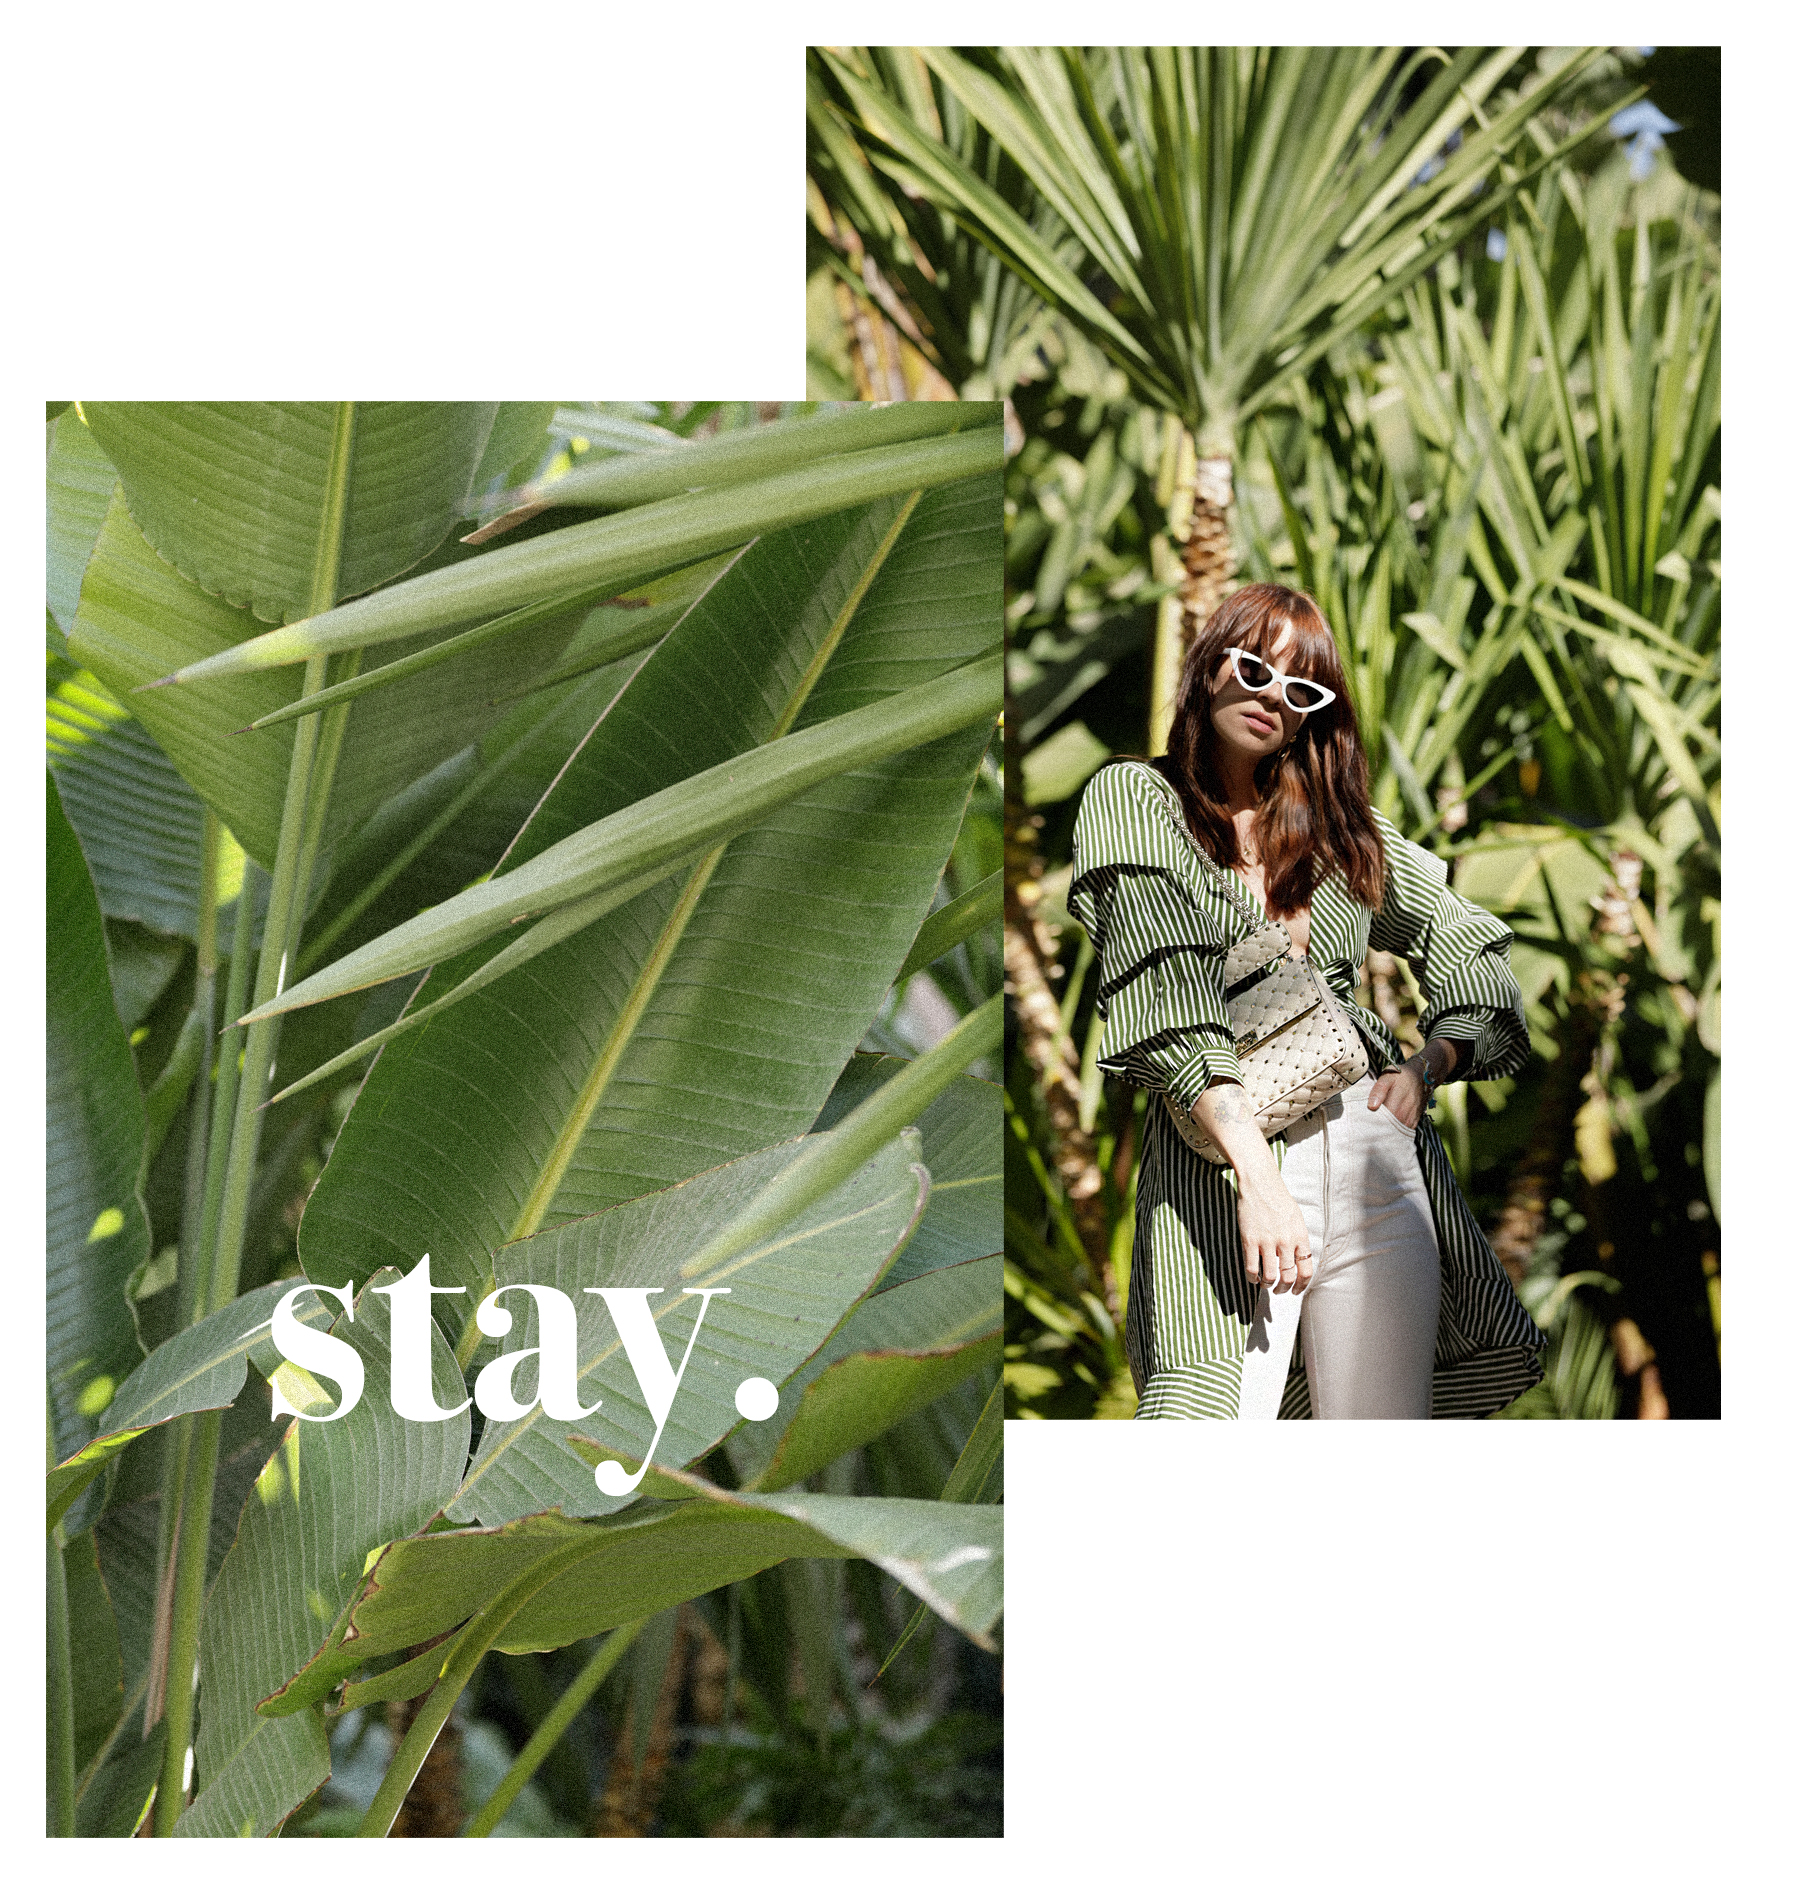 selman marrakech jungle palm tree banana leaves green dress vila breuninger maison valentino hermès oran adam selman x le specs sunglasses last lolita dress as top stripes green max bechmann fotografie film düsseldorf ricarda schernus catsanddogsblog 2